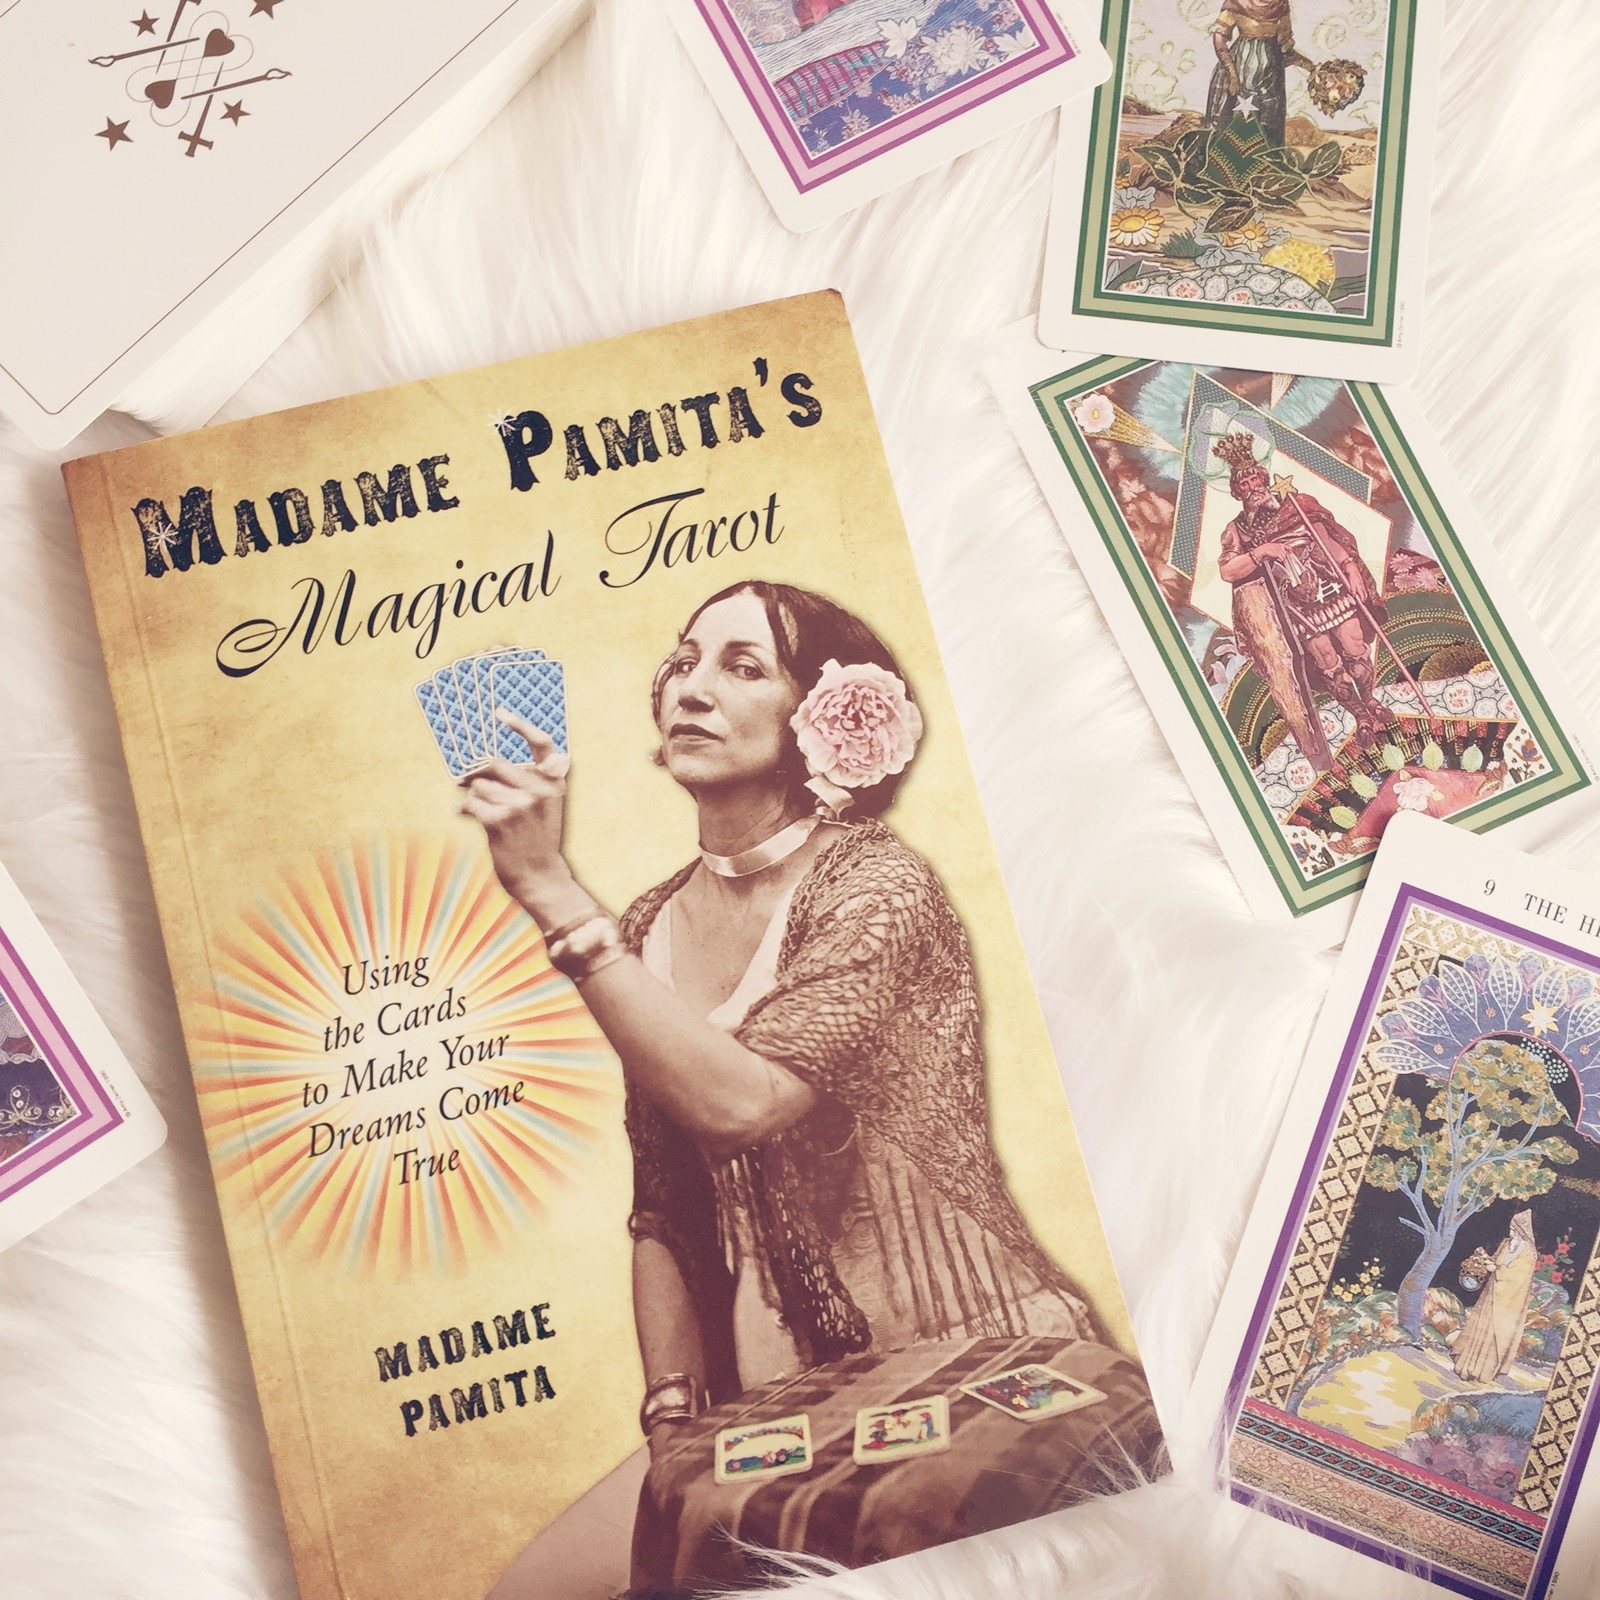 Madam Pamita's Magical Tarot